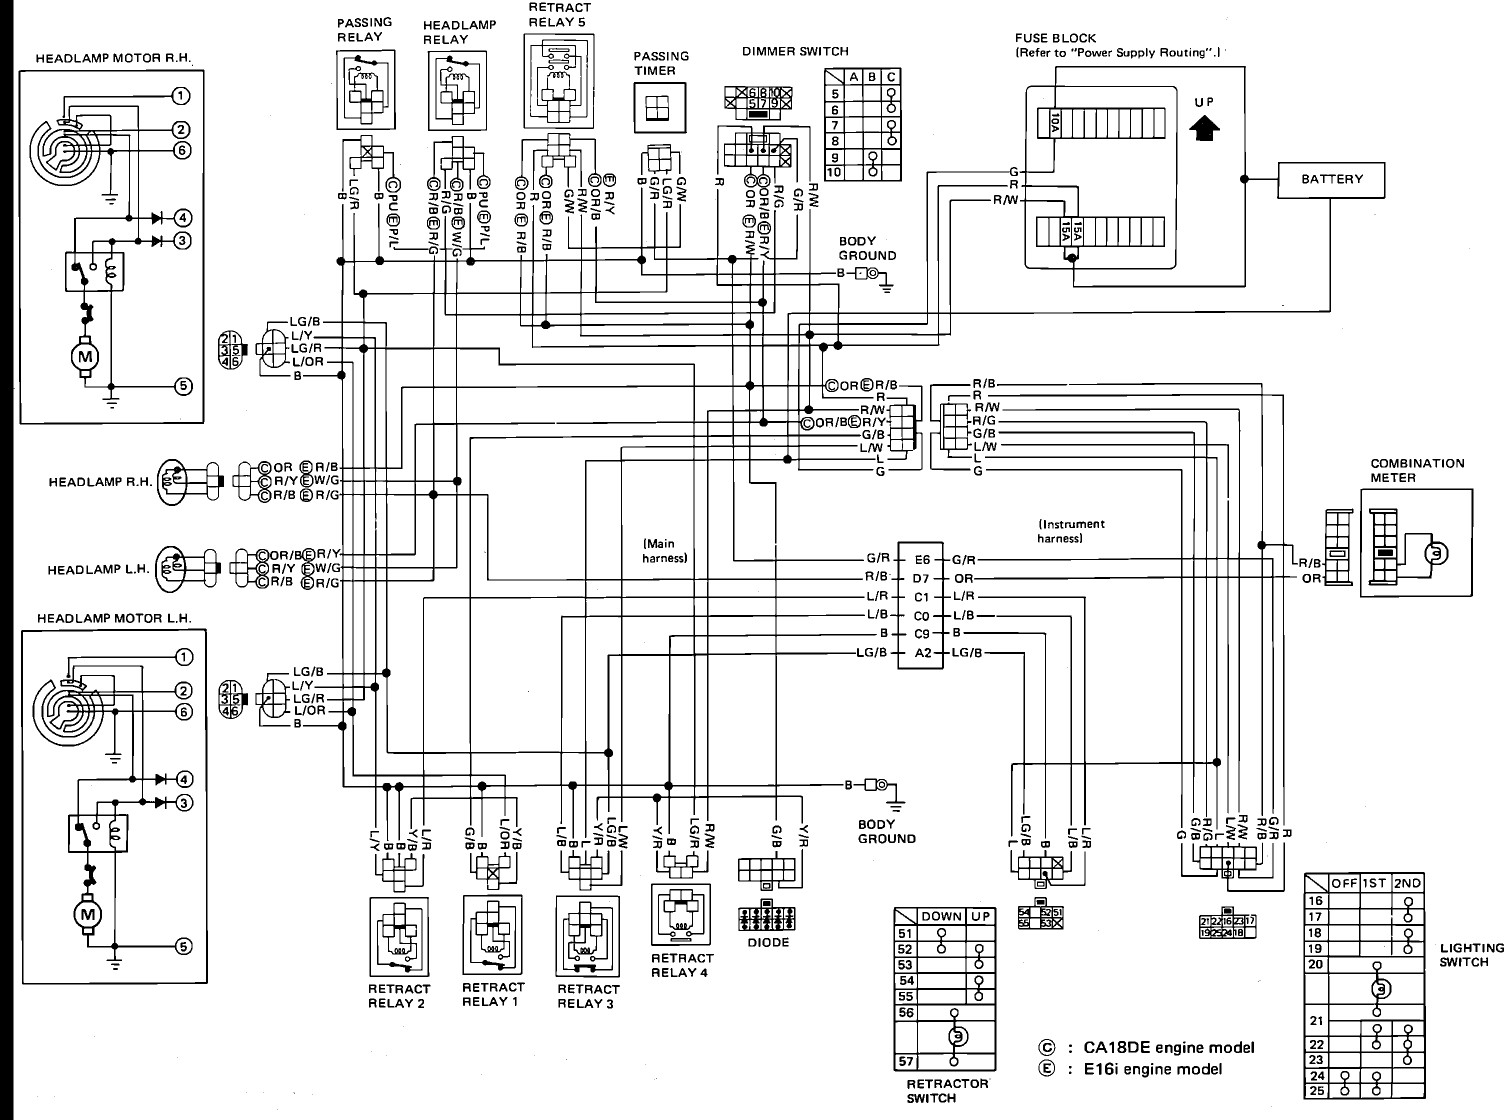 2000 Nissan Maxima Radio Wiring Diagram from static-cdn.imageservice.cloud